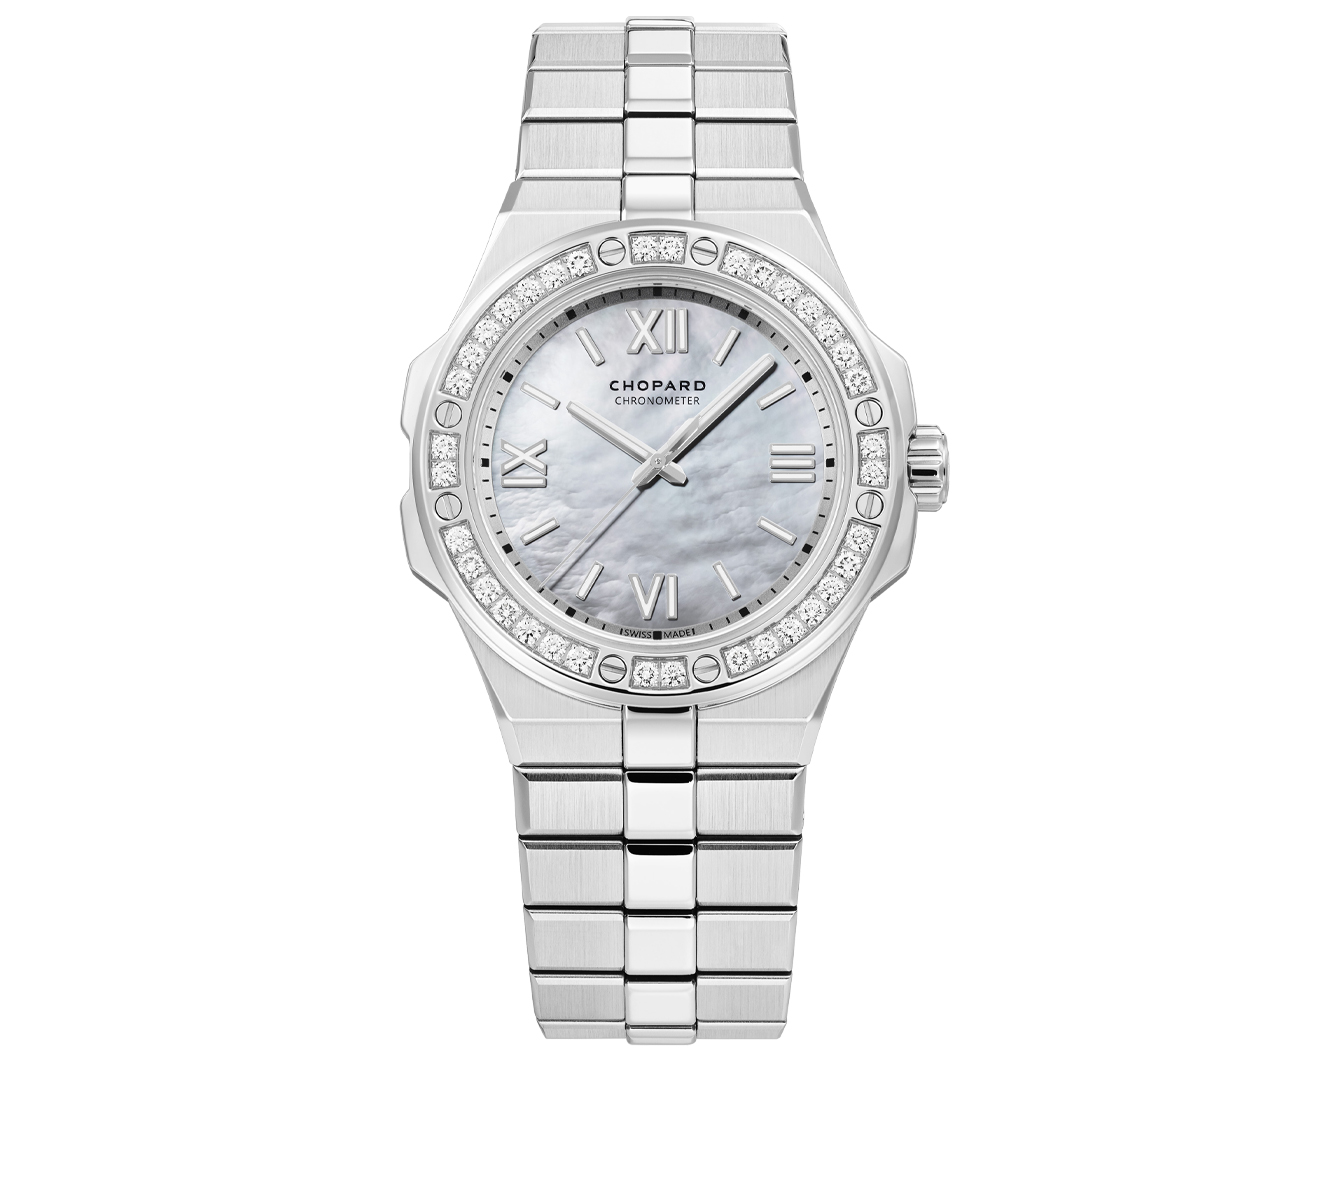 Часы Alpine Eagle Chopard Alpine Eagle 298601-3002 - фото 1 – Mercury